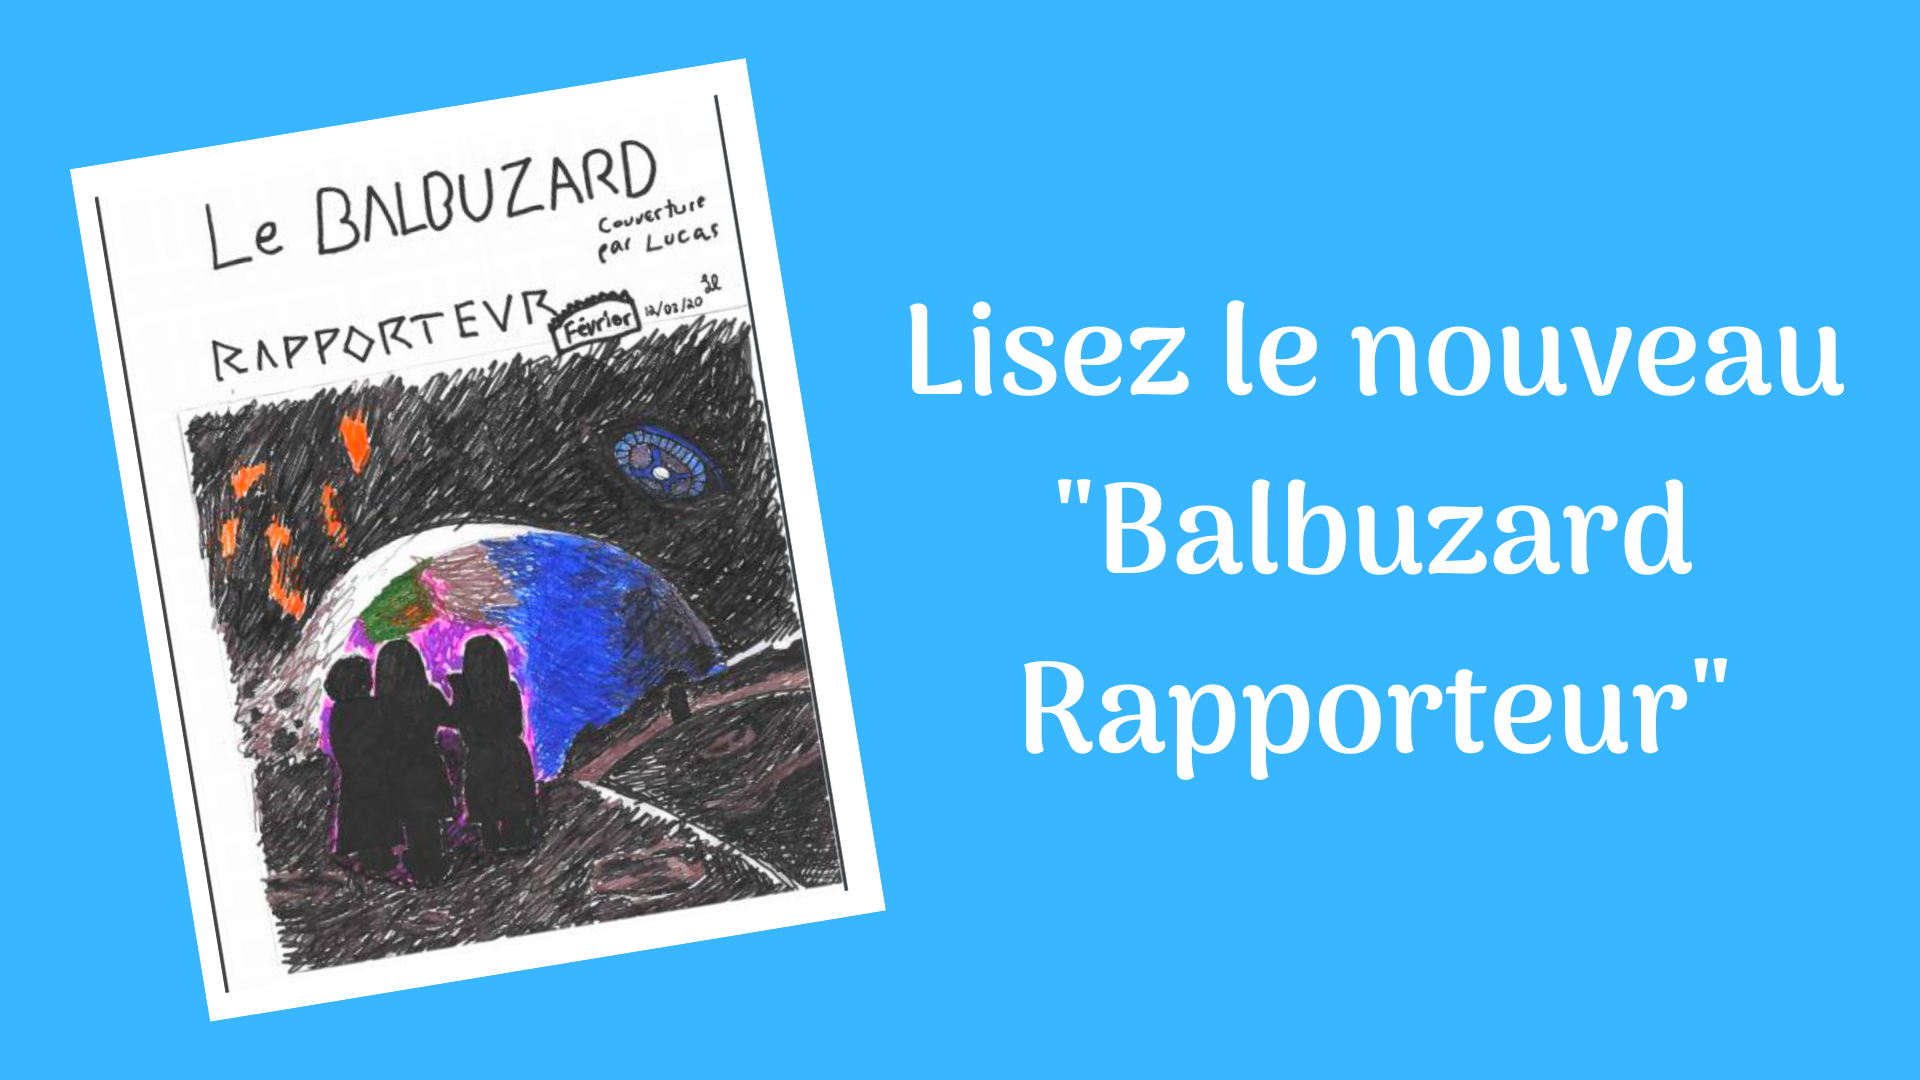 Slideshow 2 - balbuzard